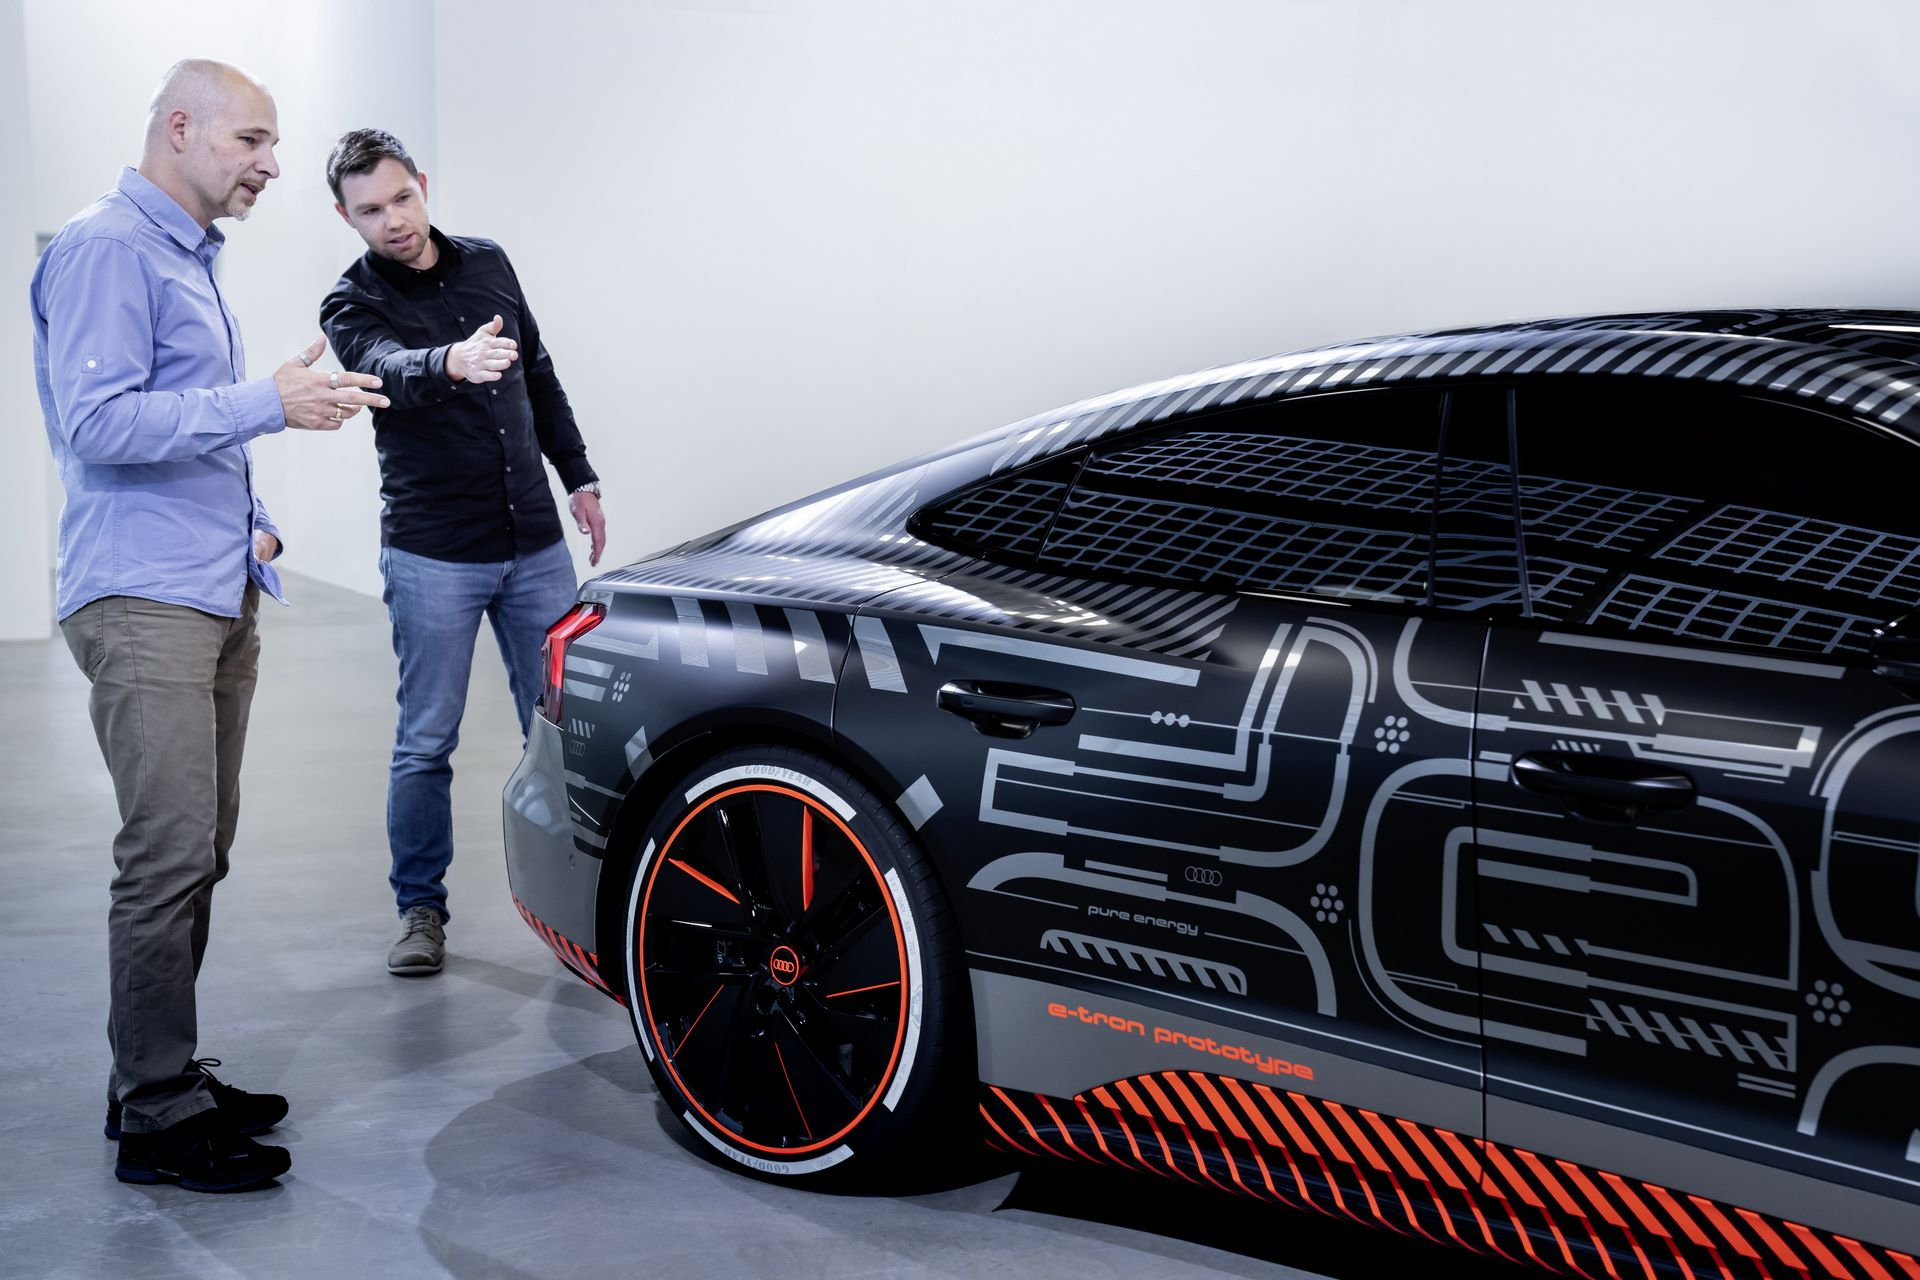 e-Sound of the Audi e-tron GT